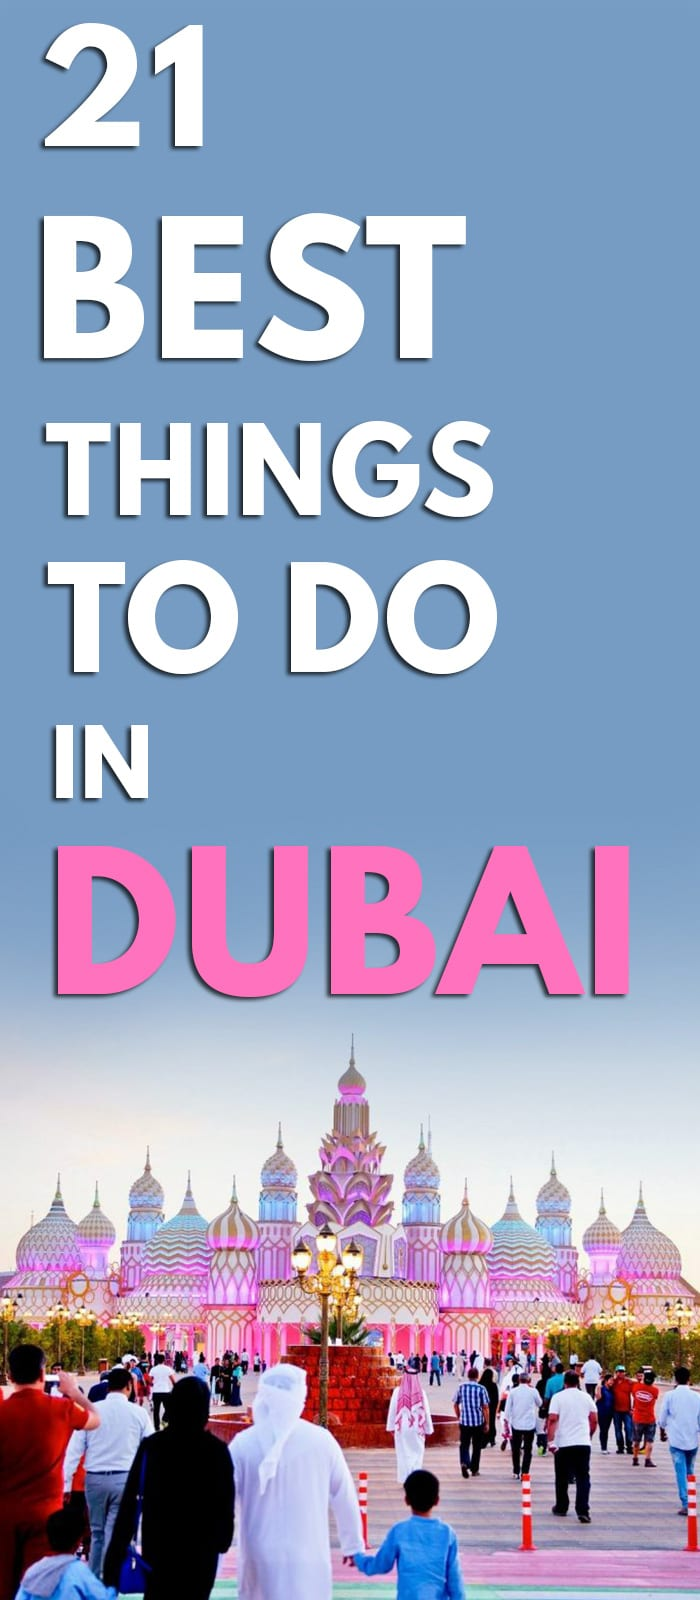 21 Best Things to do in Dubai - Best Dubai tour Packages